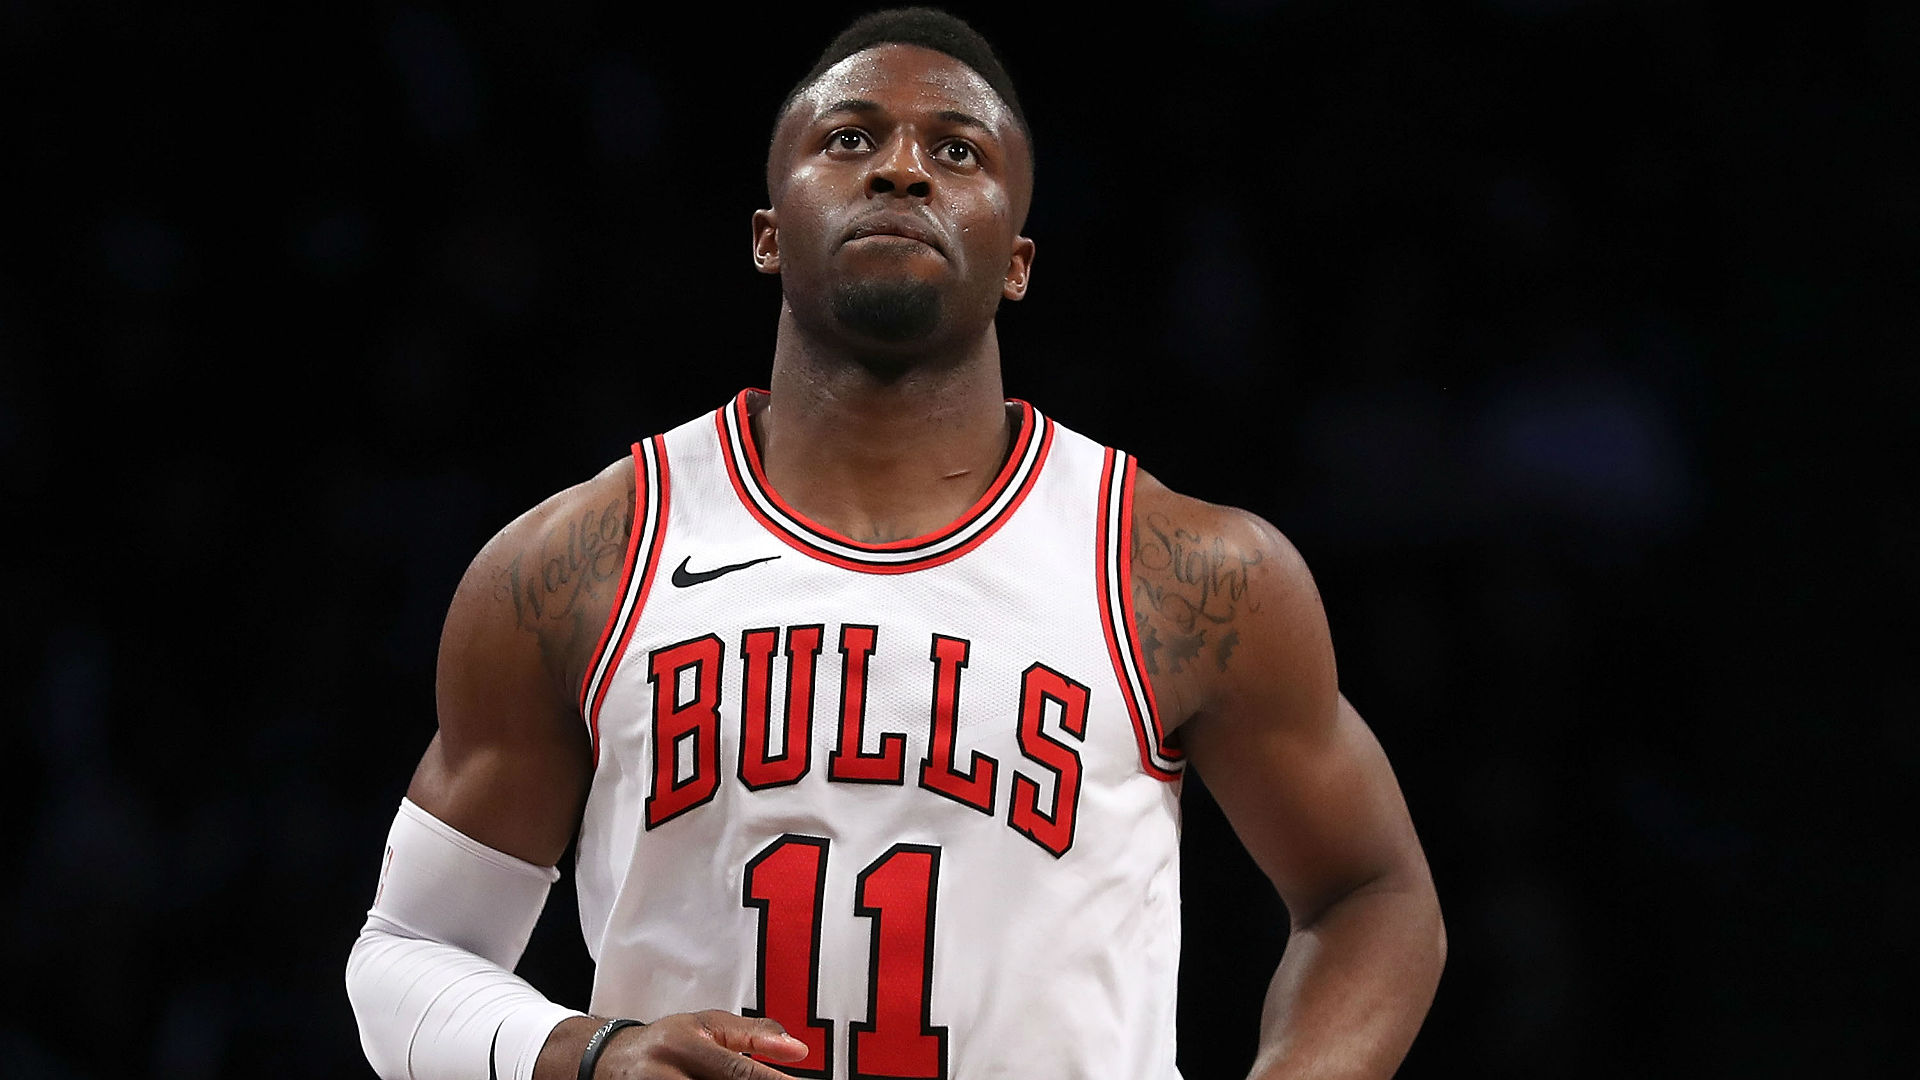 NBA free agency rumors: Cavaliers to sign former Bulls guard